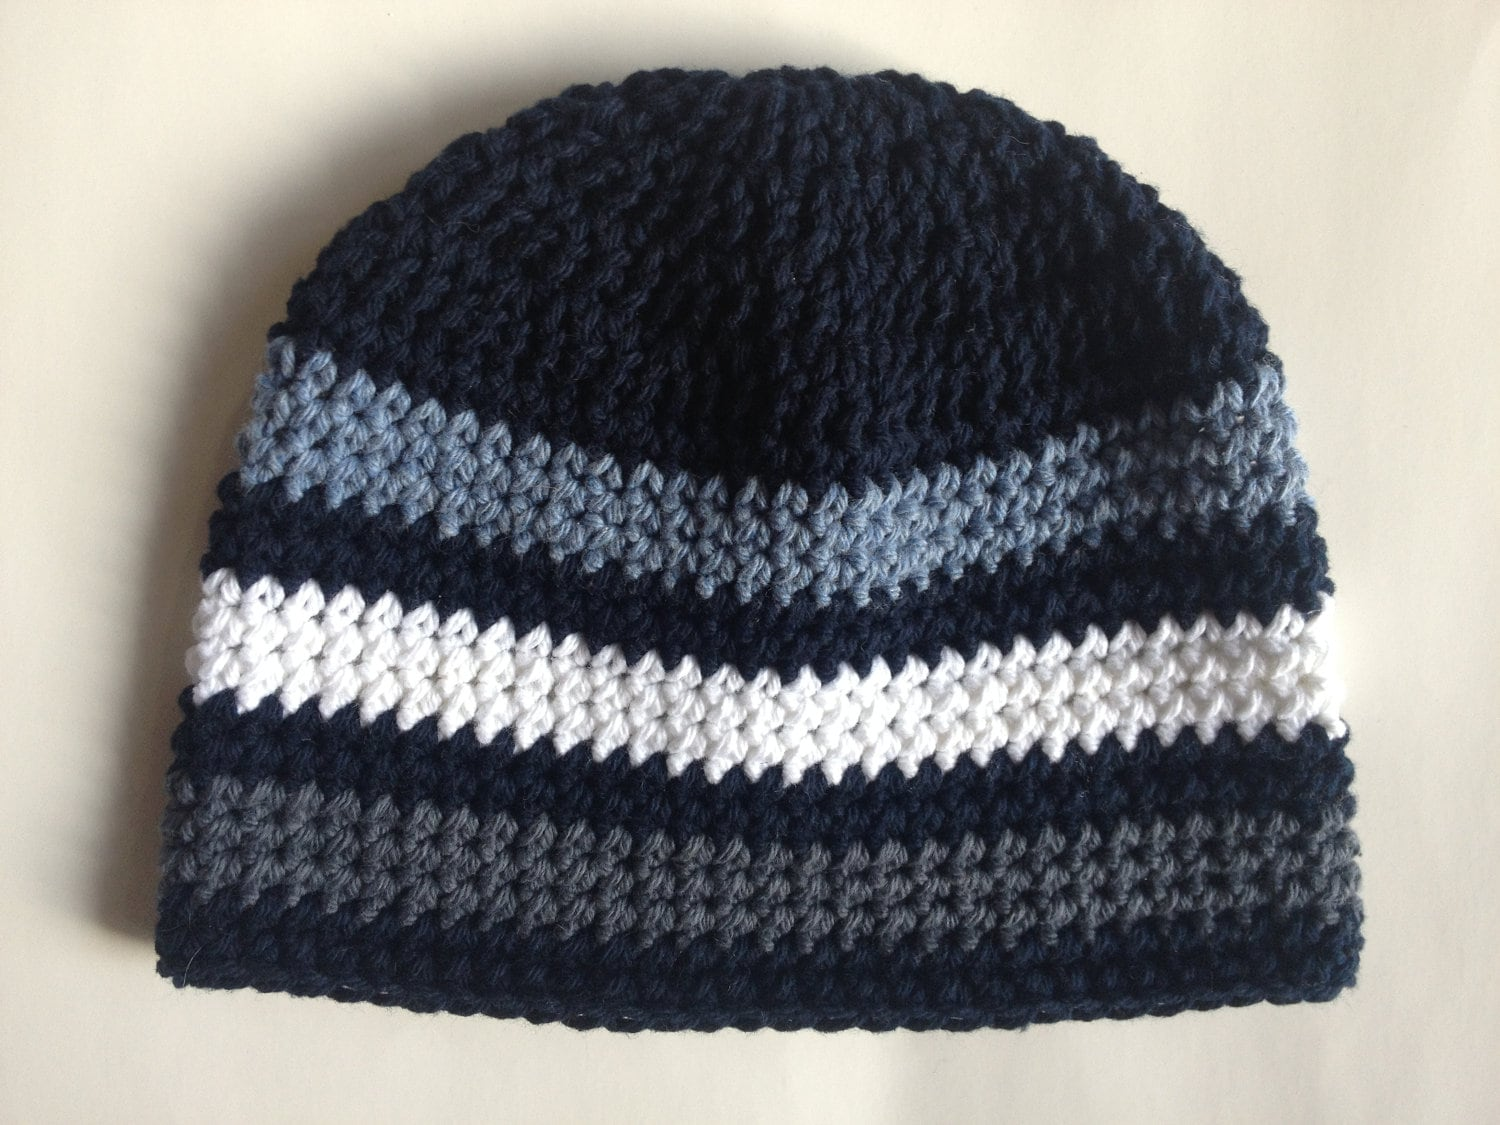 Crochet Beanie Pattern Striped : SALE Striped Beanie Hat Crochet Pattern PDF by BabyBopProps